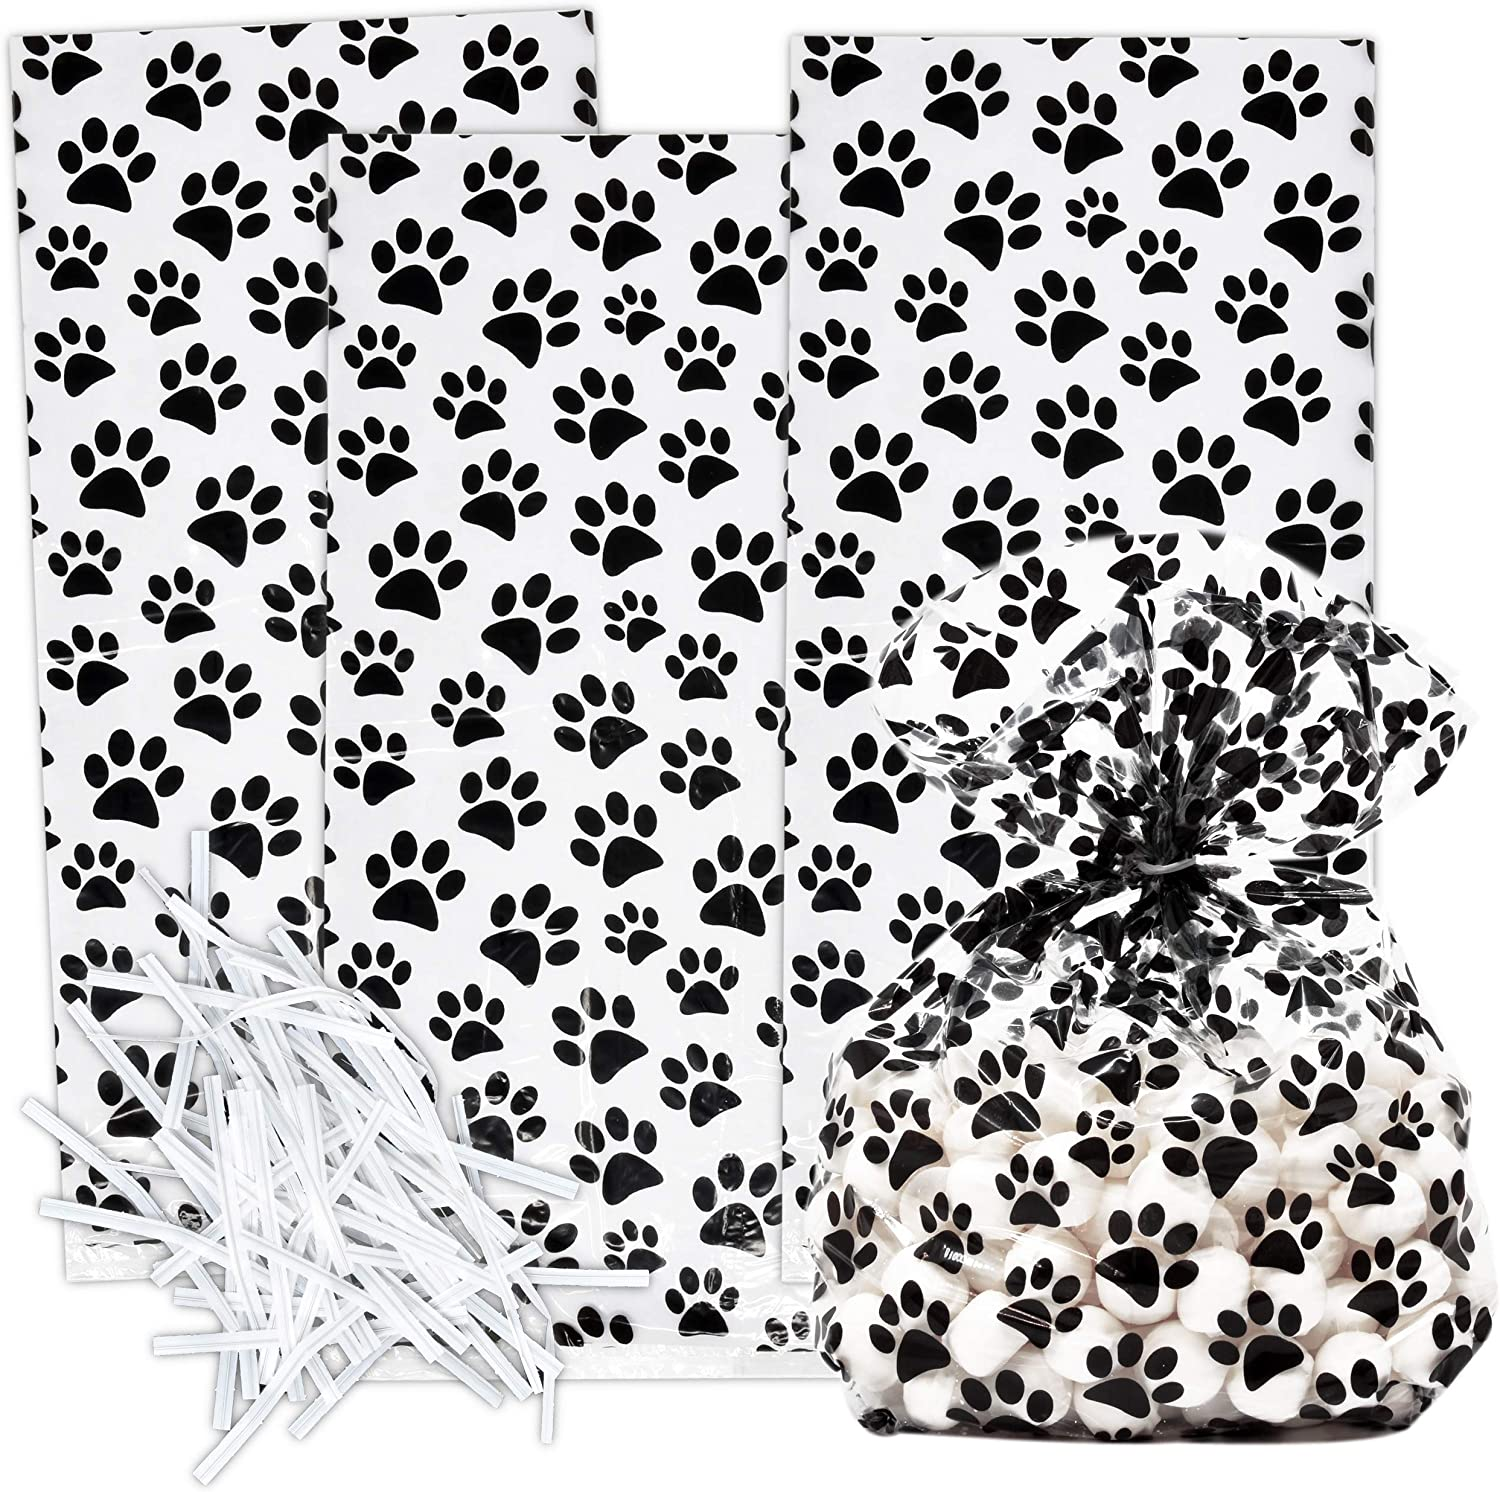 100 Dog Paw Print Cellophane Bags Plastic Treat Favor Bag Animal Pet Paws Themed Birthday Party Supplies Decorations for Kids Classroom Reward, Carnival, Games, Candy Goody Grab Bag Gift Boutique